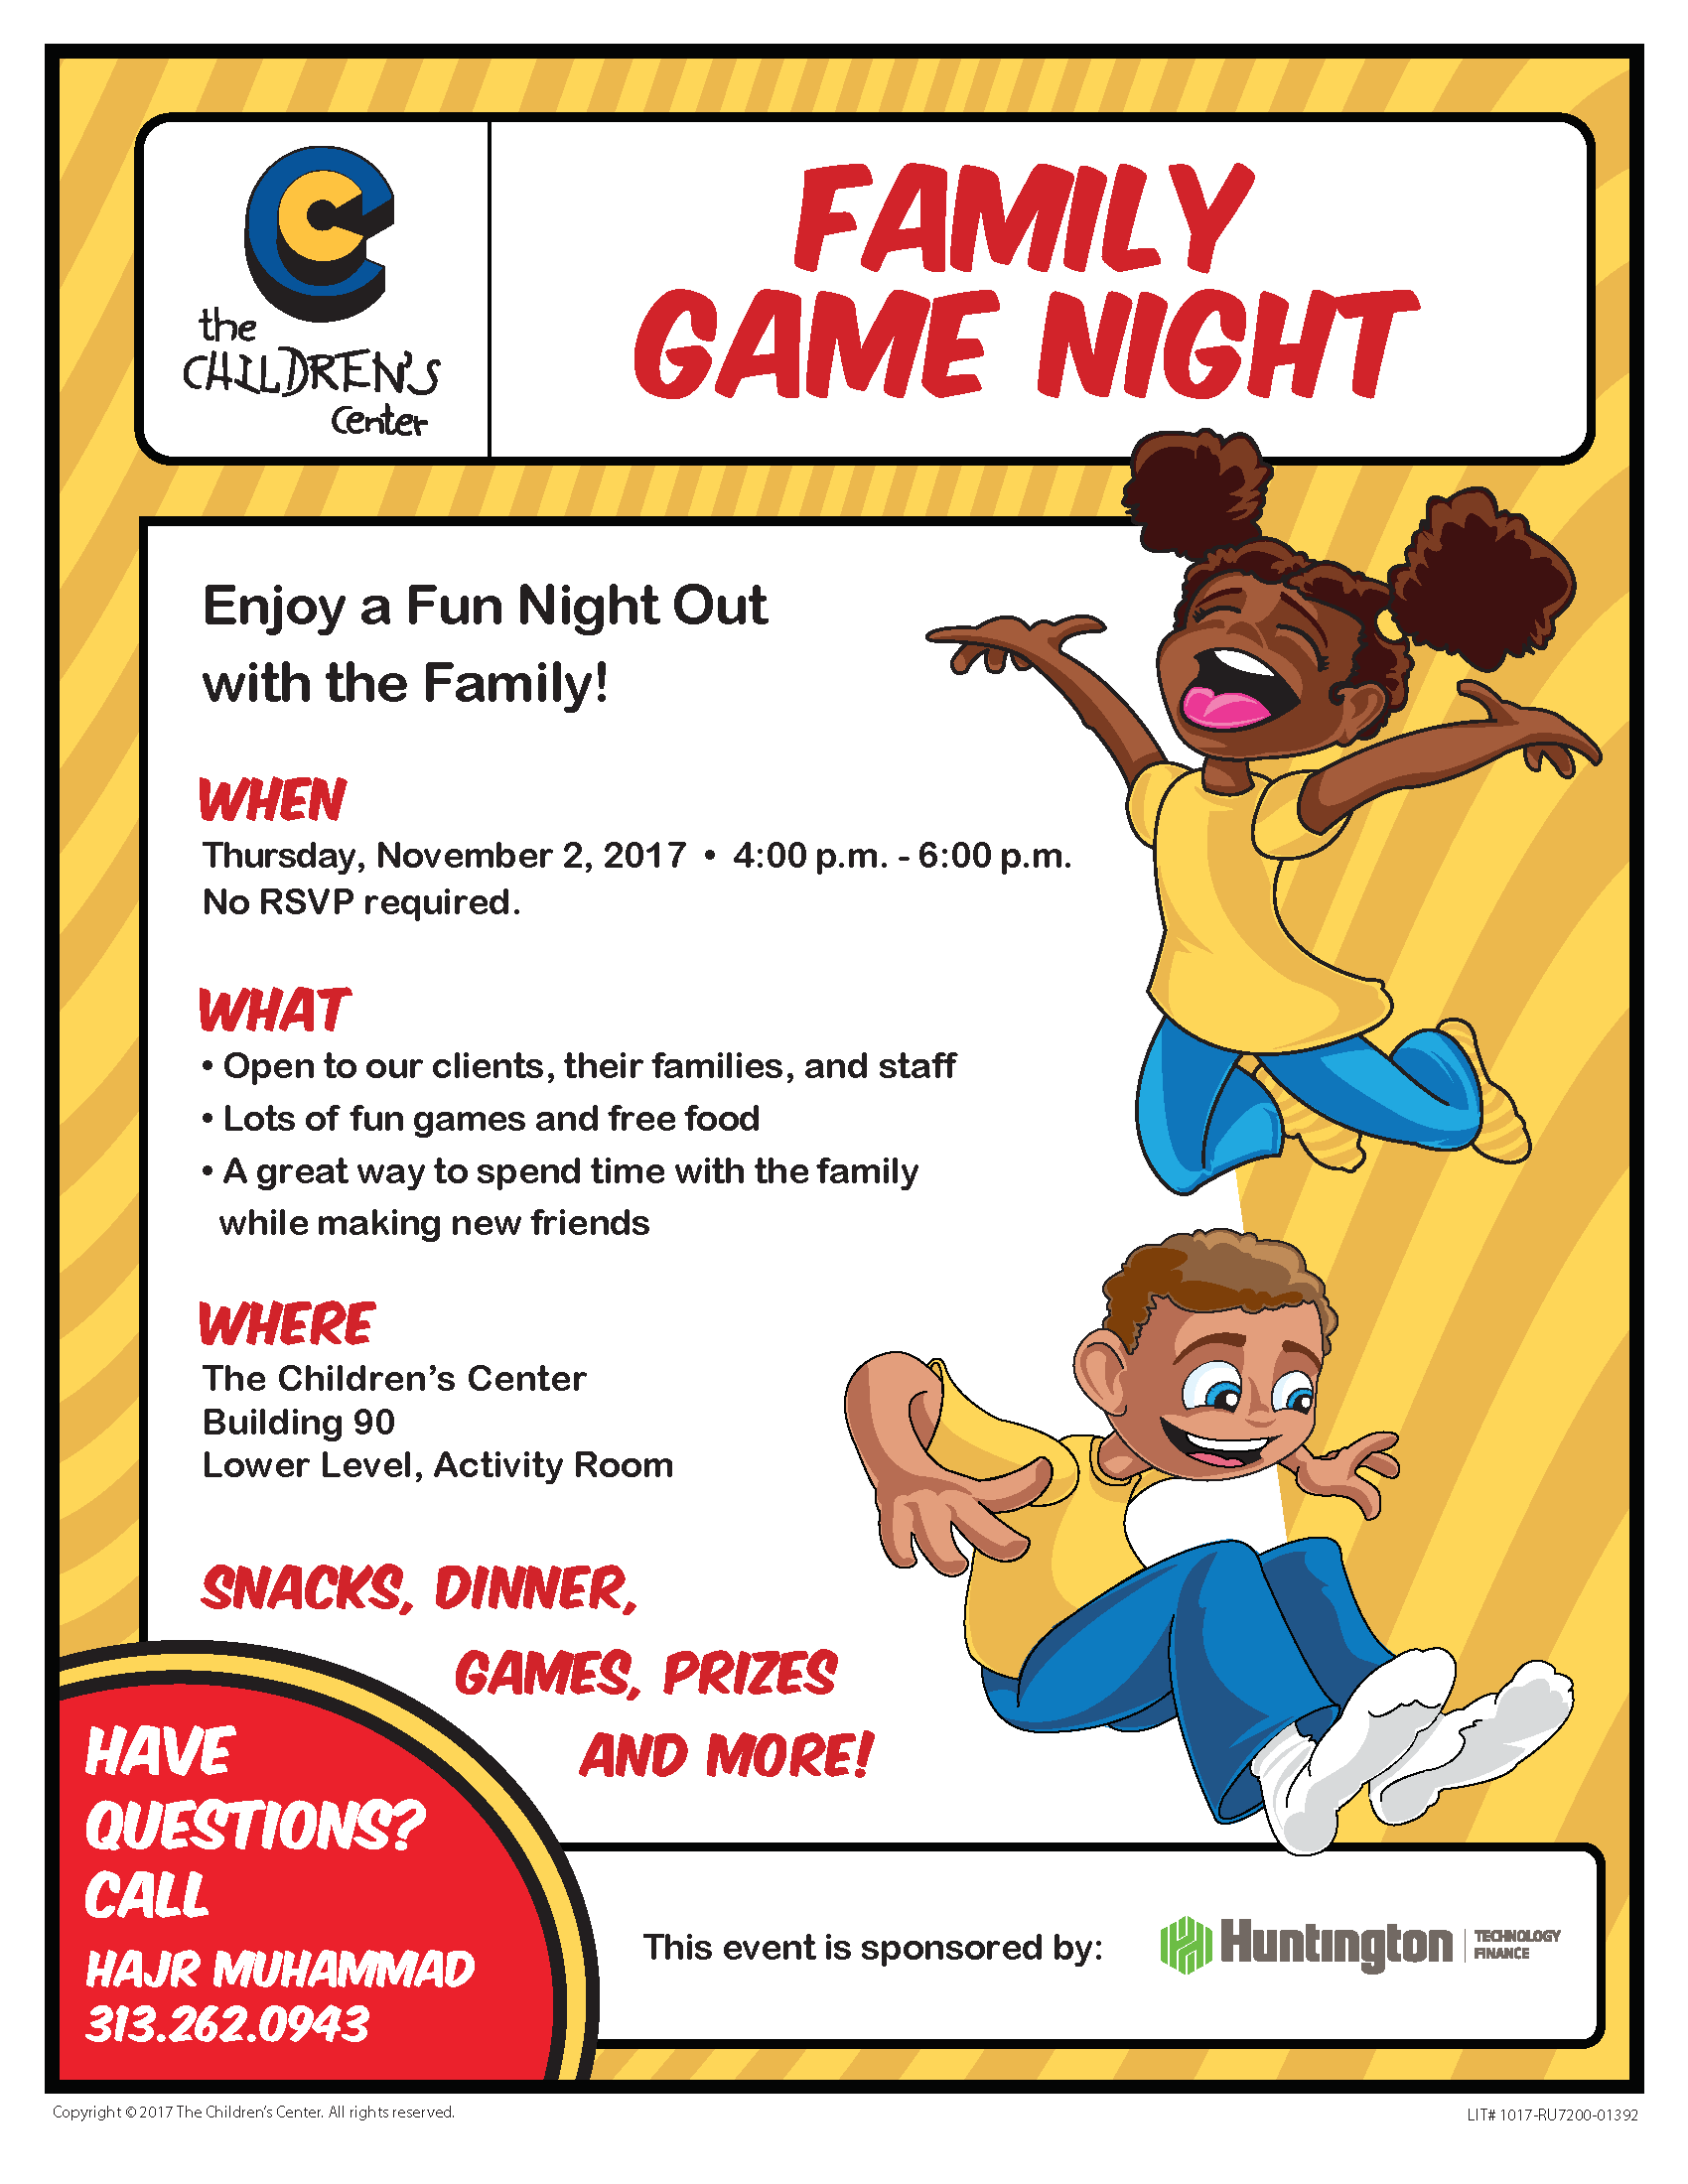 Enjoy A Fun Night Out With The Family